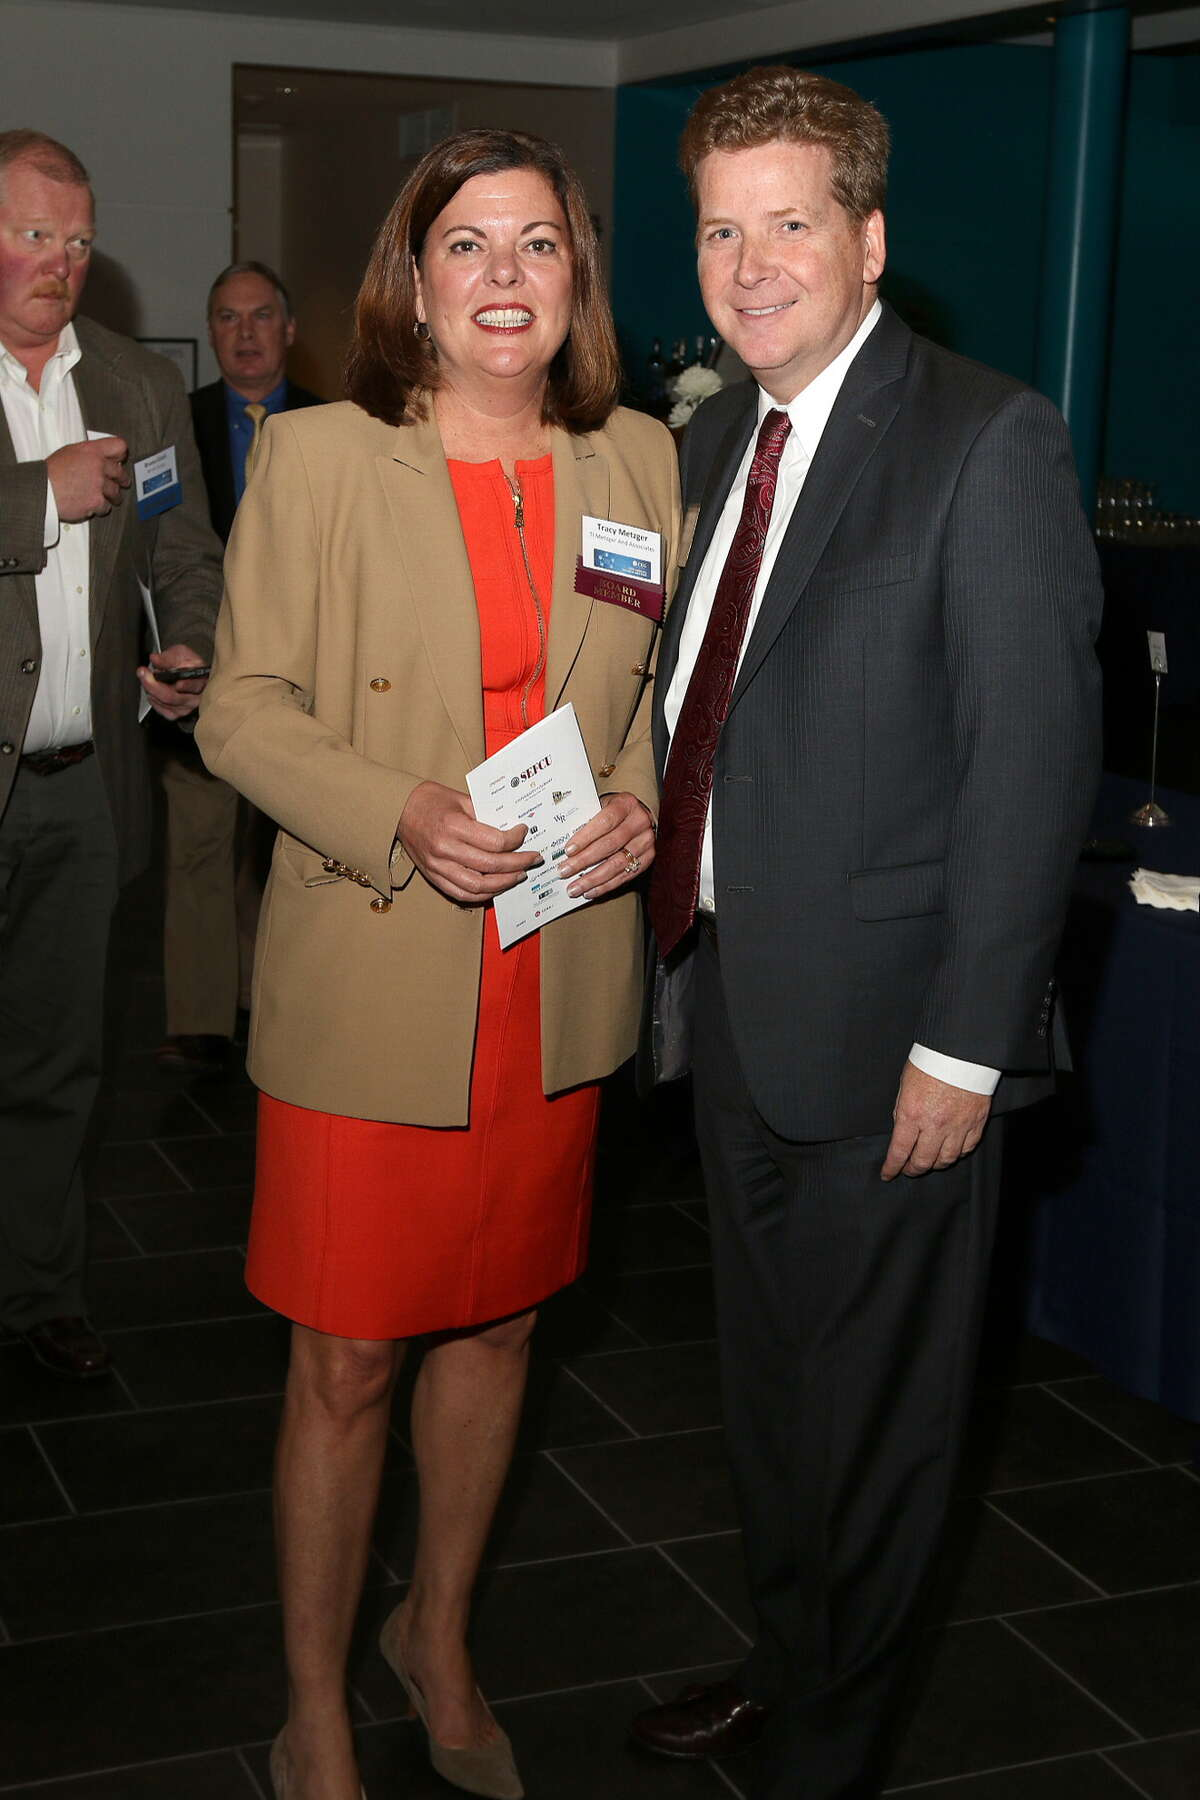 Were you Seen at the Center for Economic Growth's annual meeting held at EMPAC in Troy on Wednesday, Oct. 21, 2015?